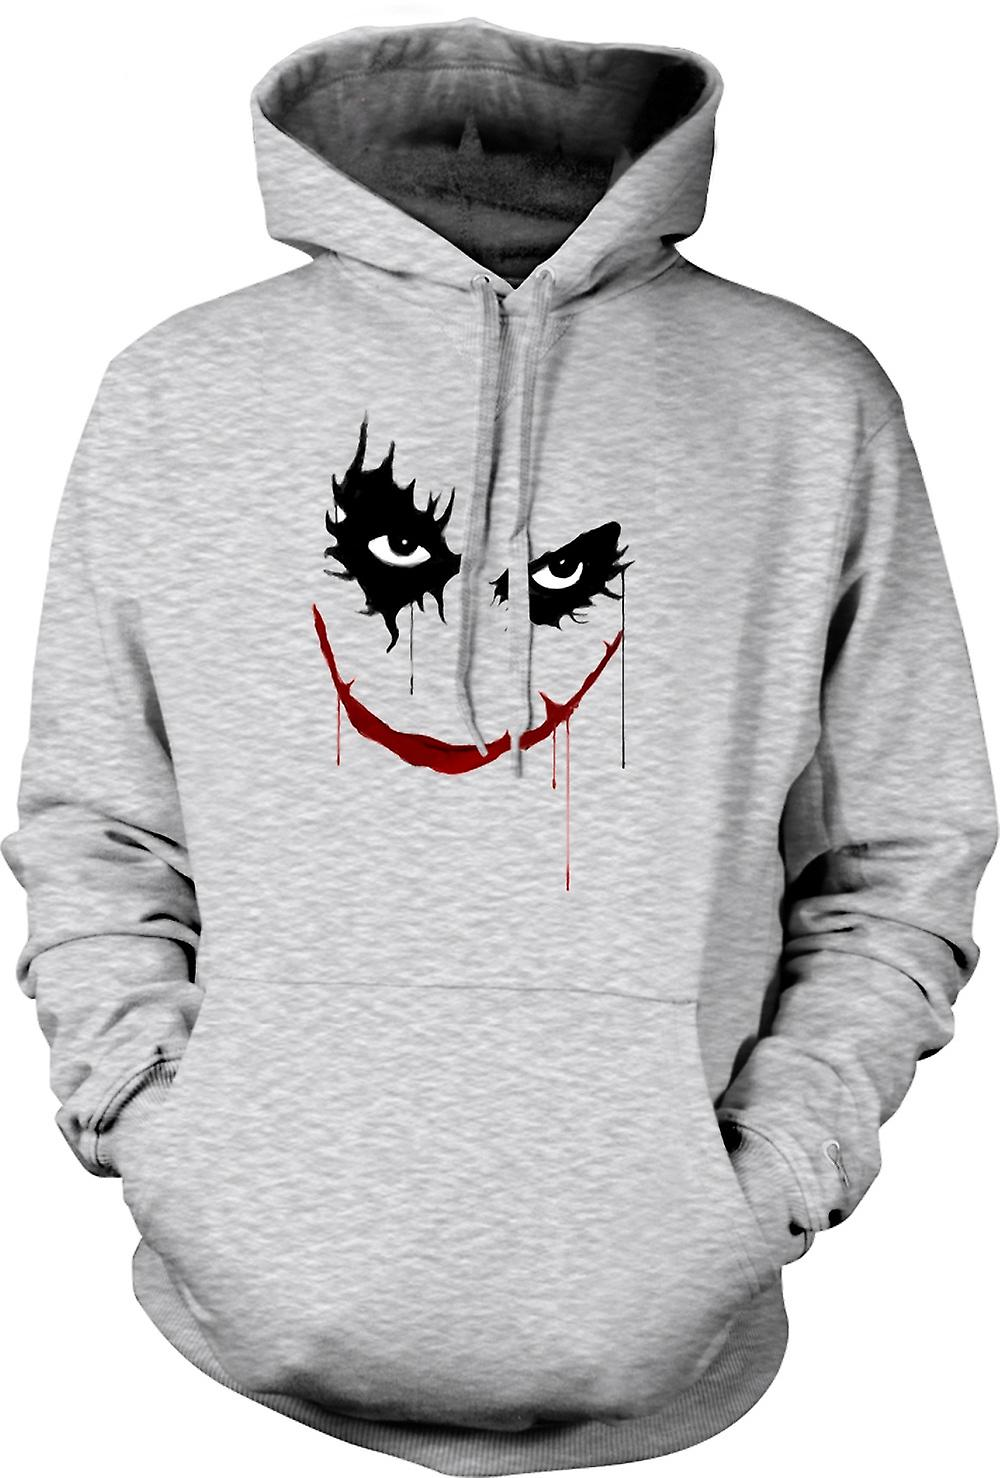 Mens Hoodie - Joker Sourire - Batman - Pop Art